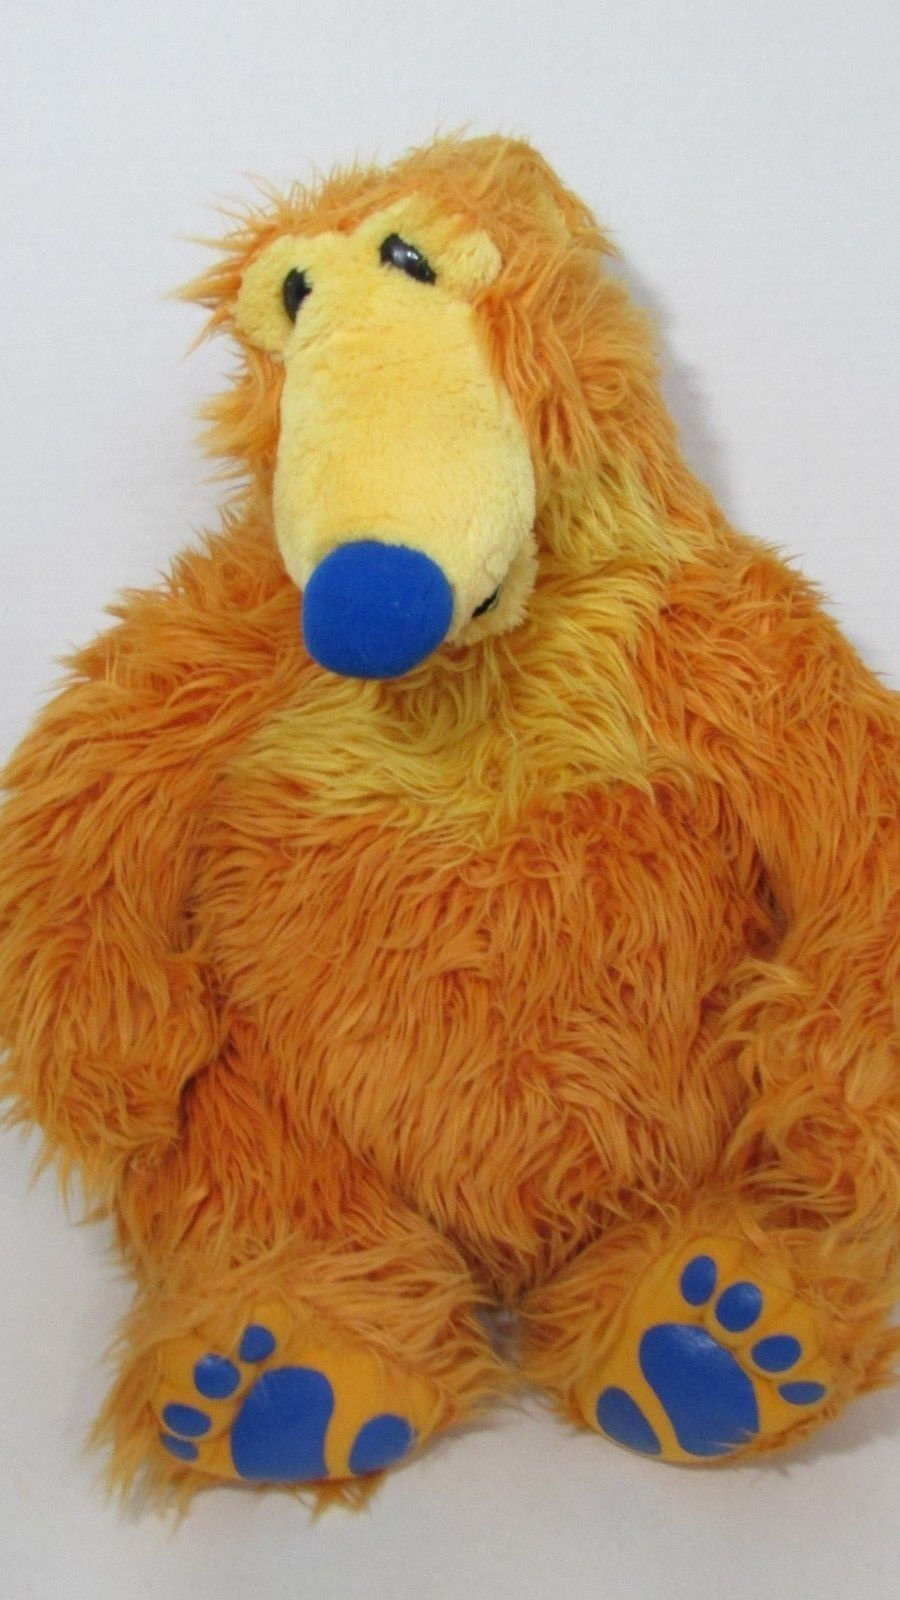 Disney Bear in the Big Blue House large plush orange teddy Mattel 18-19""